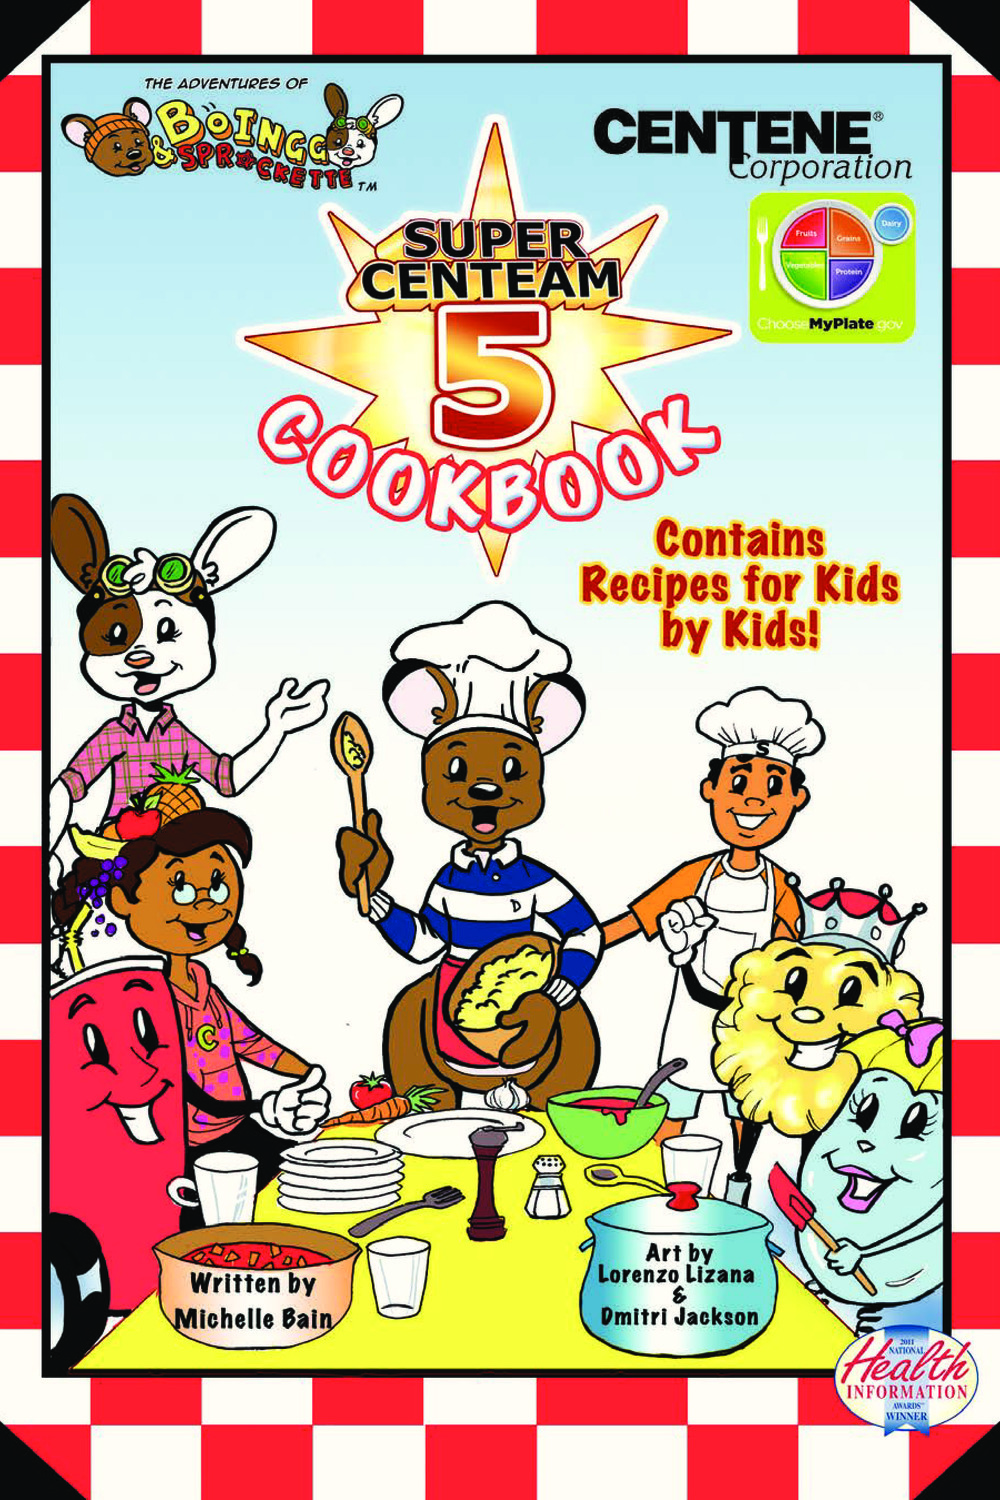 The Adventures of BoIngg & Sprockette: SUPER CENTEAM 5 COOKBOOK